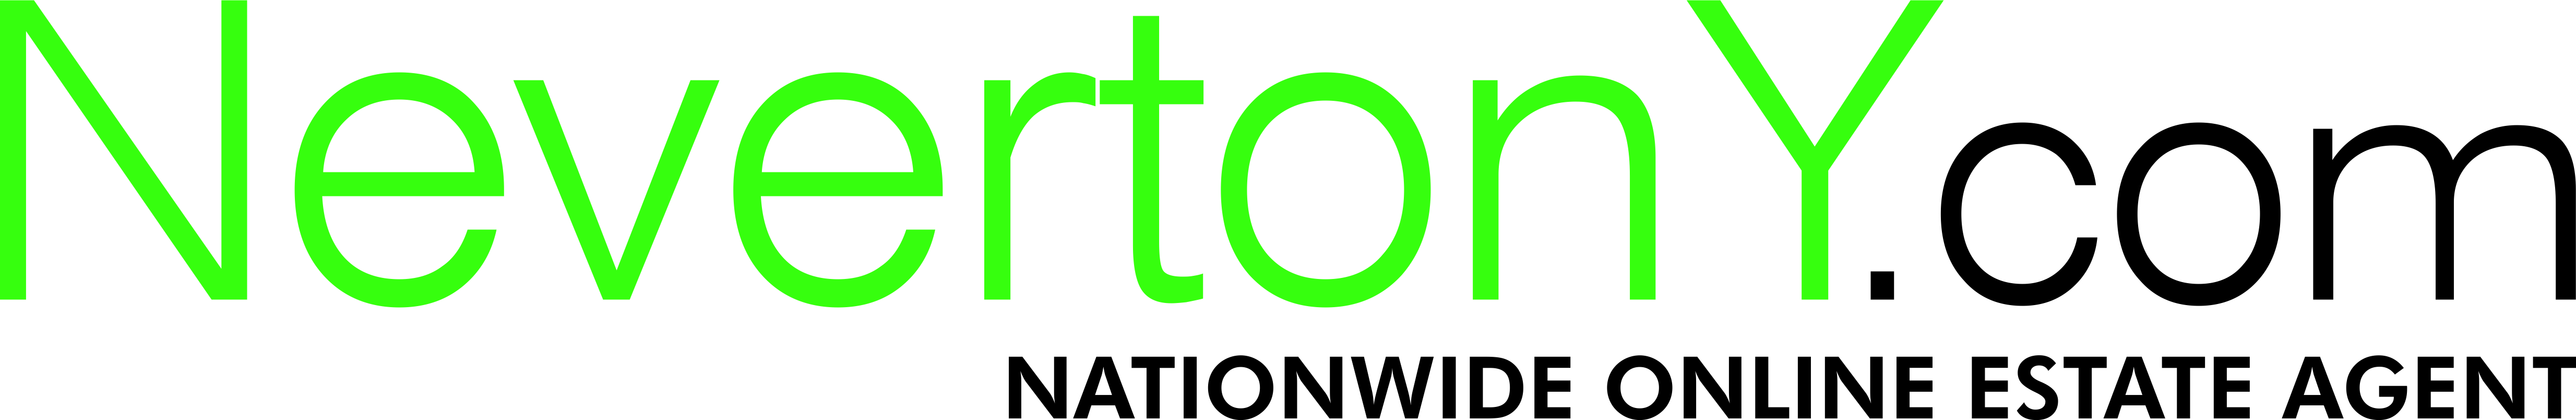 NevertonY.com: Nationwide Online Estate Agent